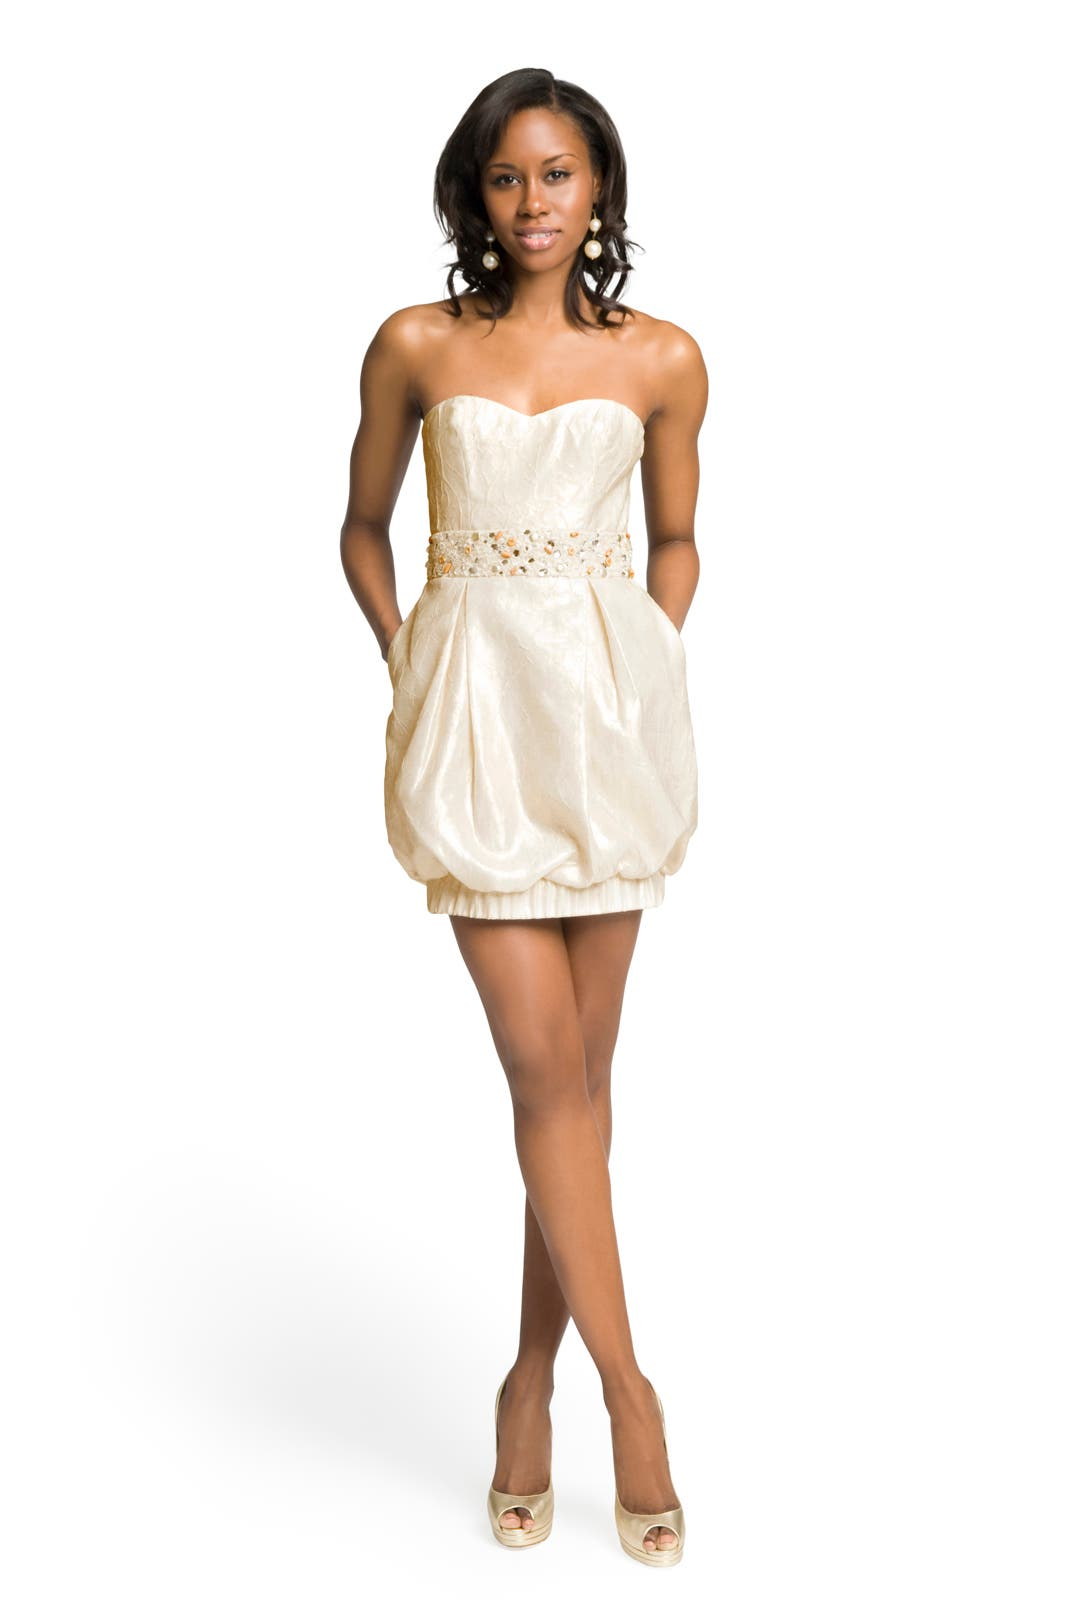 Sweetheart Bubble Dress by Mark & James by Badgley Mischka